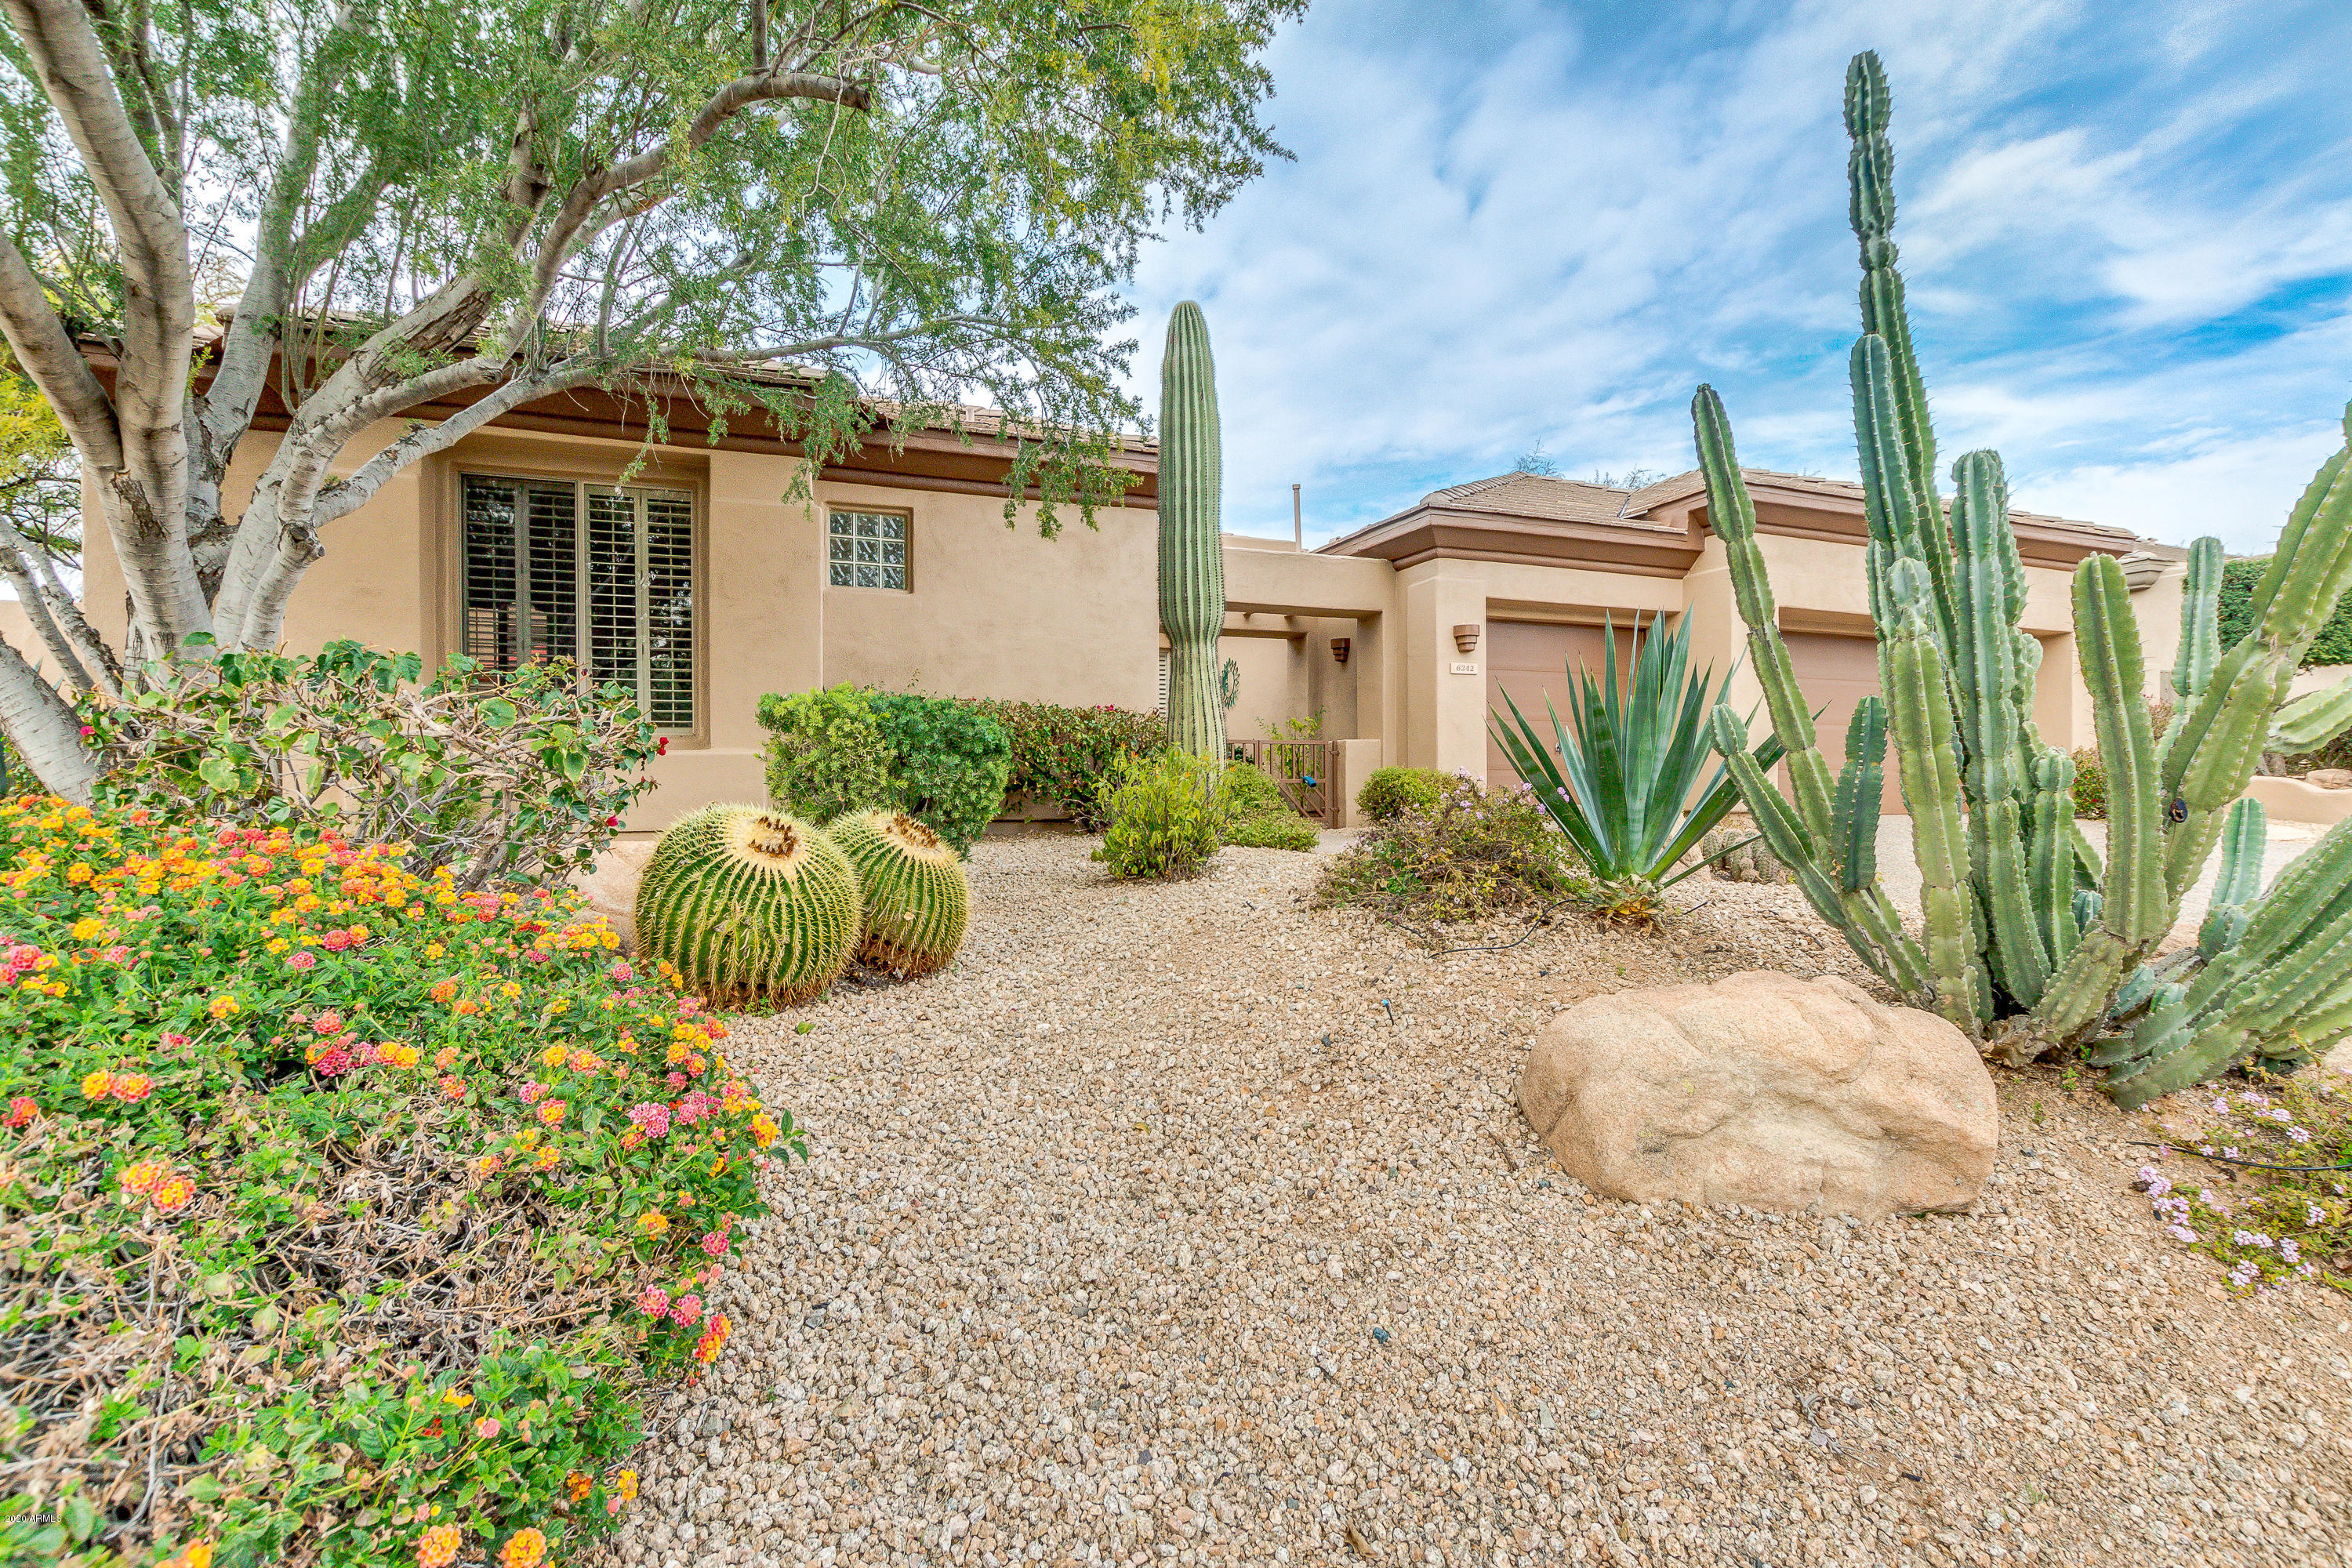 Photo of 6242 E AMBER SUN Drive, Scottsdale, AZ 85266